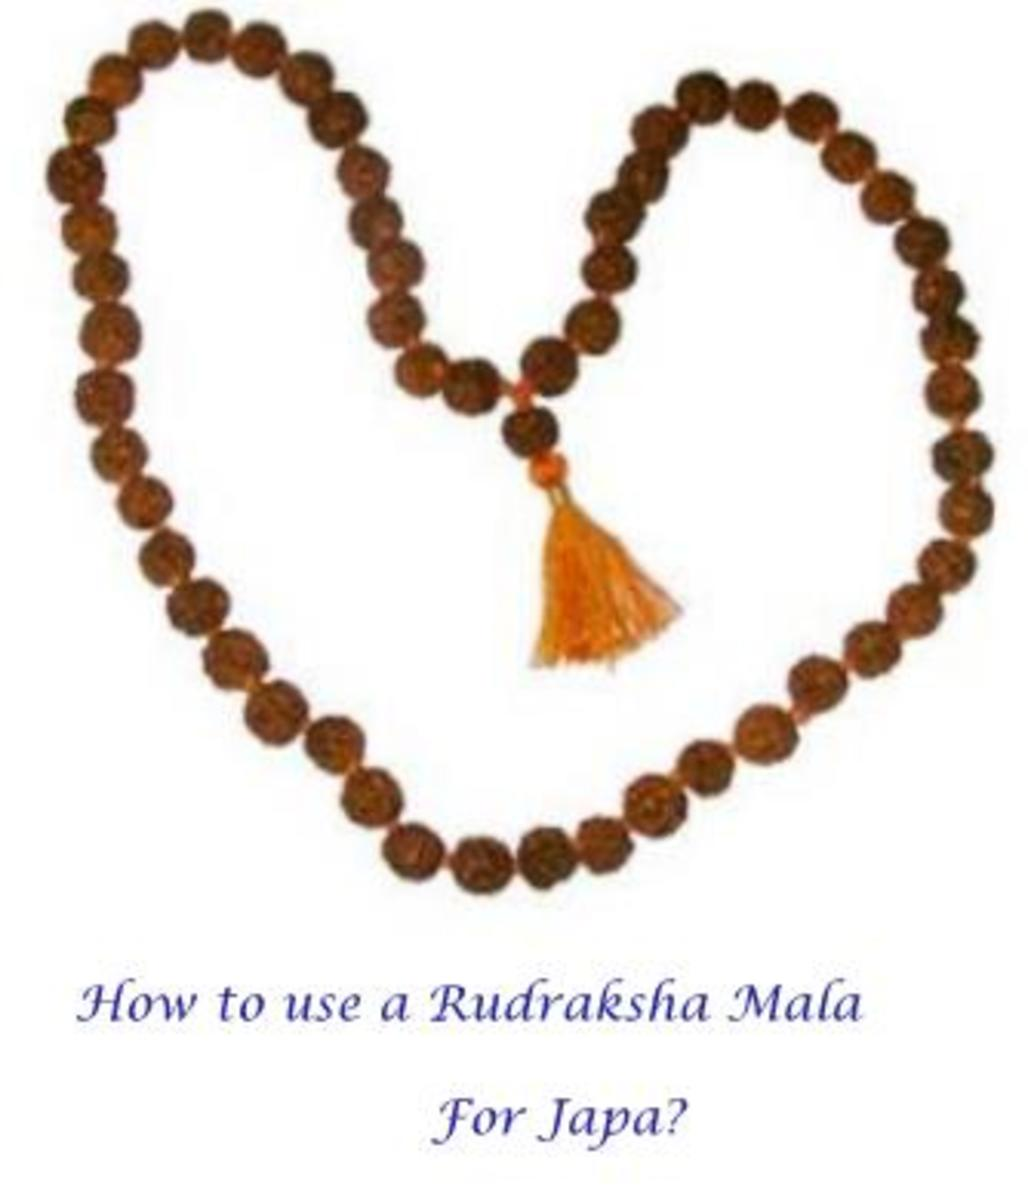 How to use a Rudraksha Mala for the purpose of chanting Mantras?